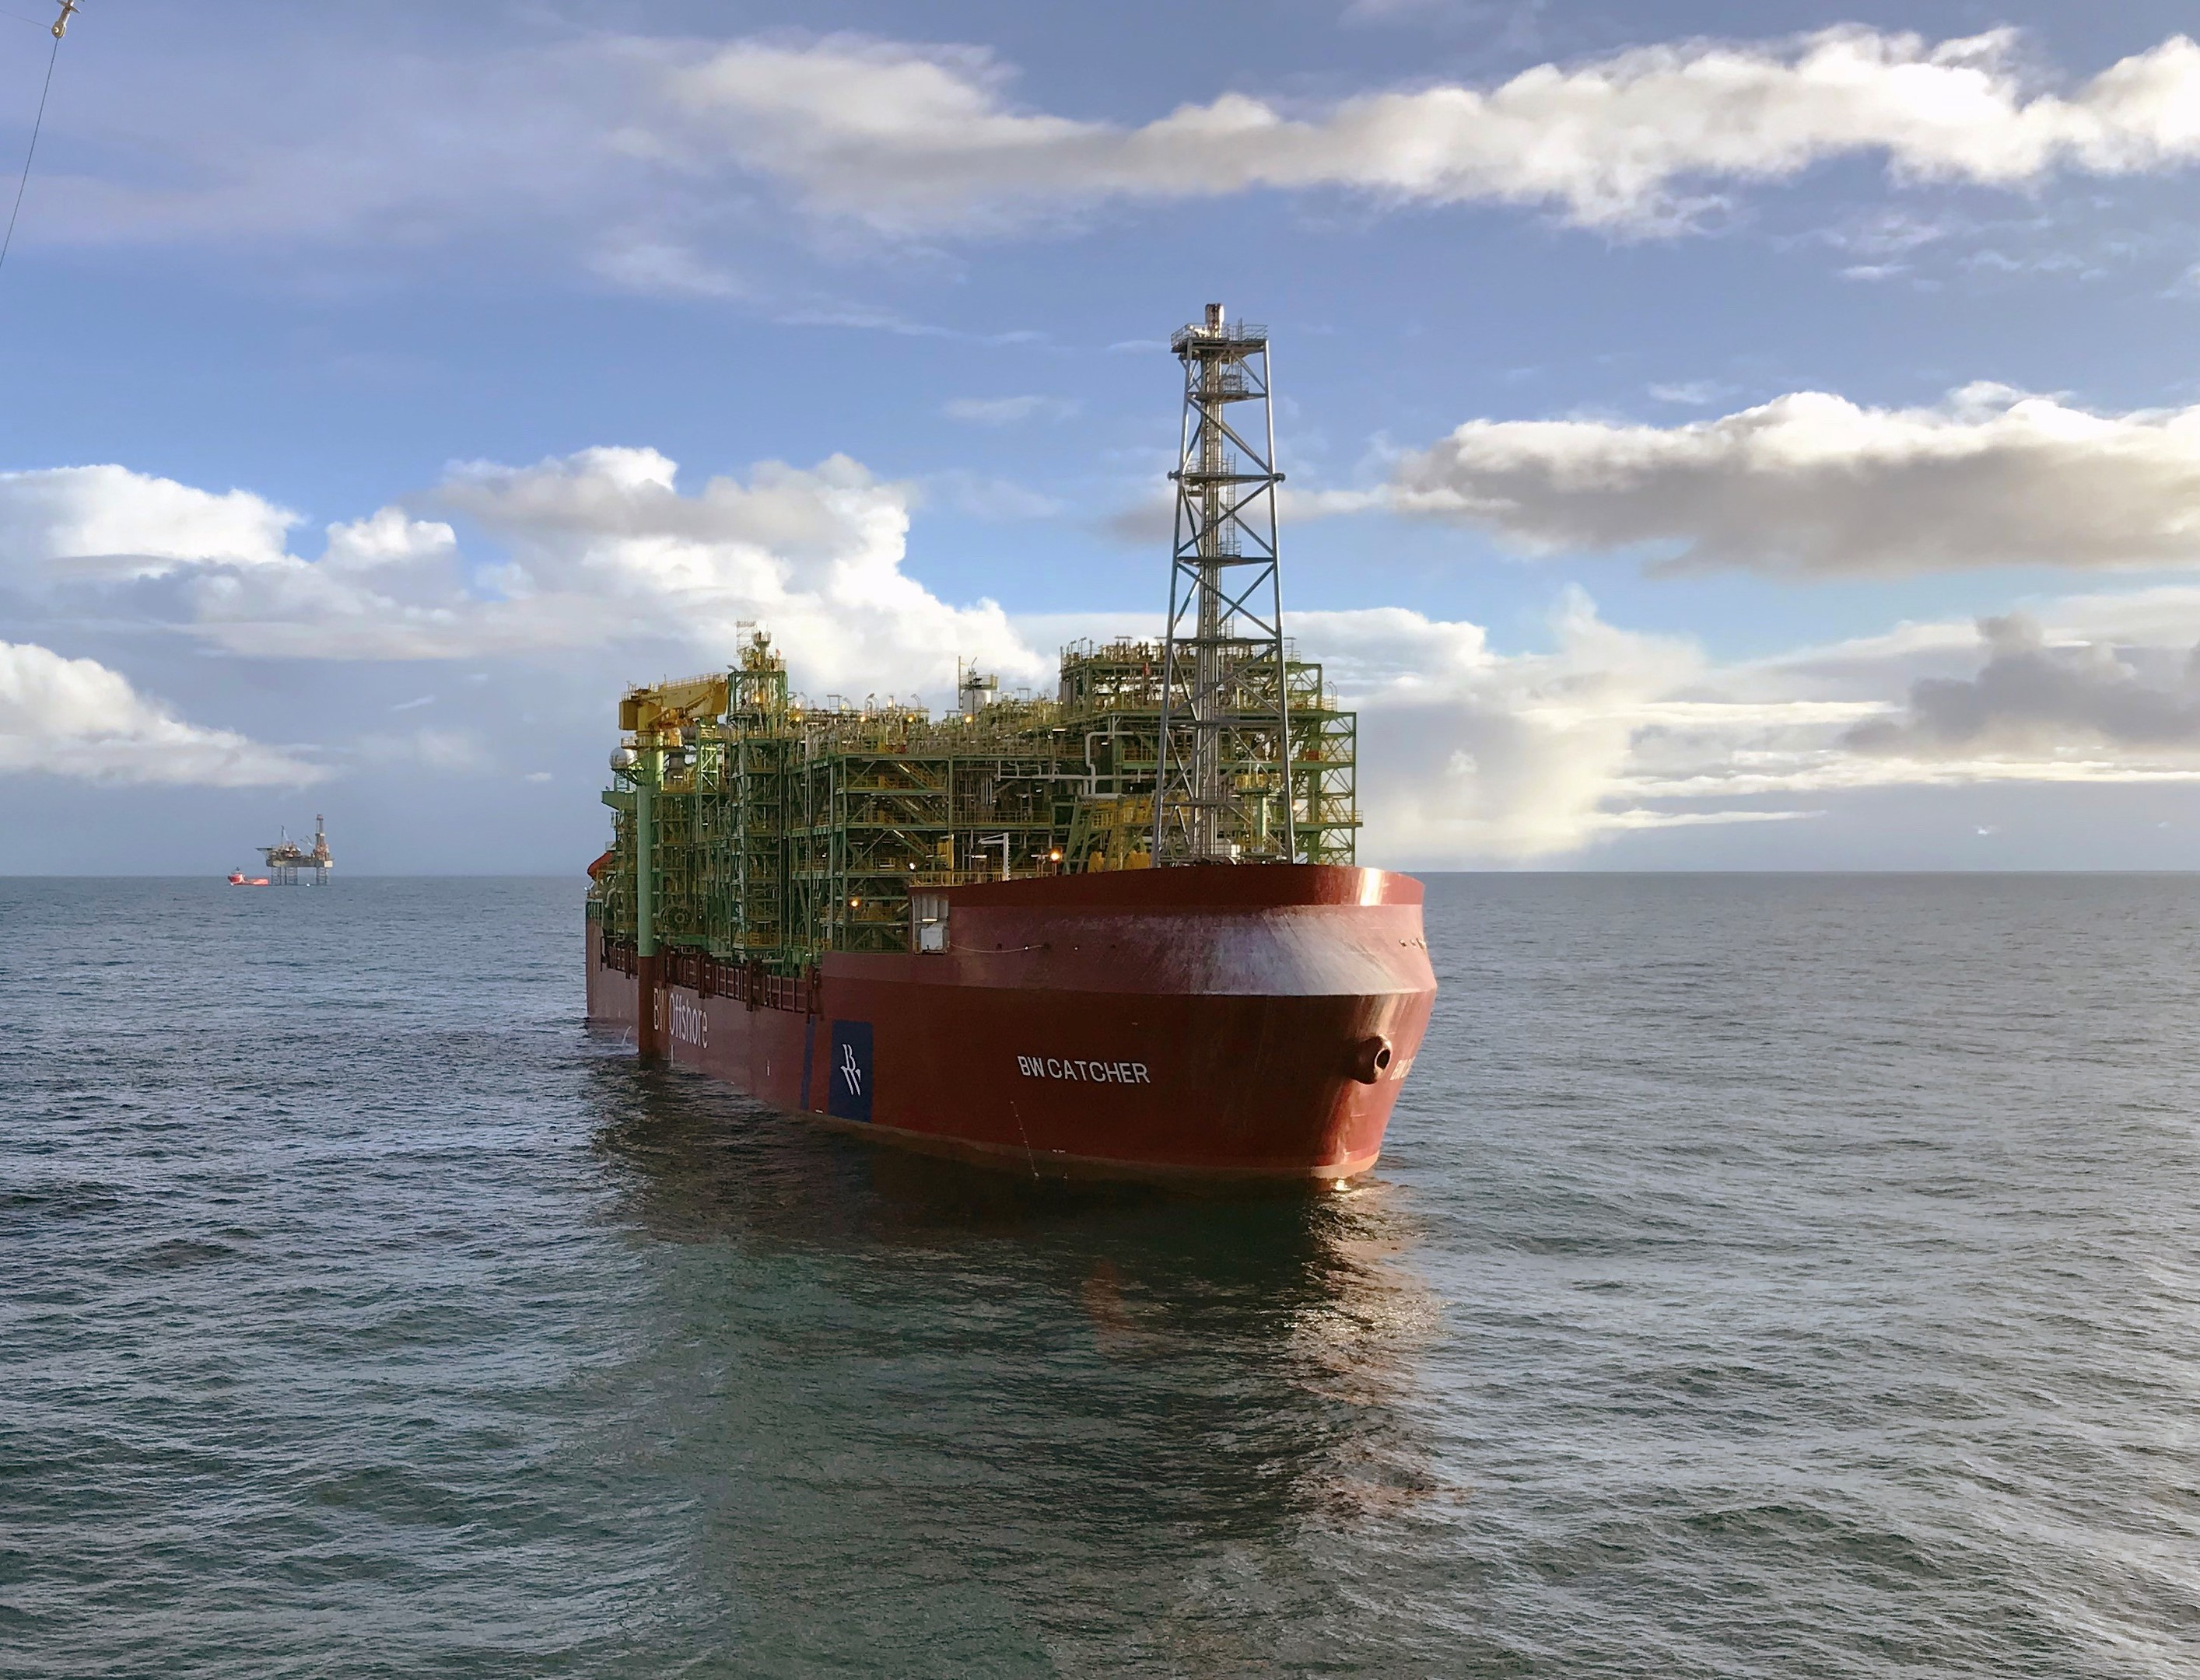 Premier Oil's Catcher FPSO